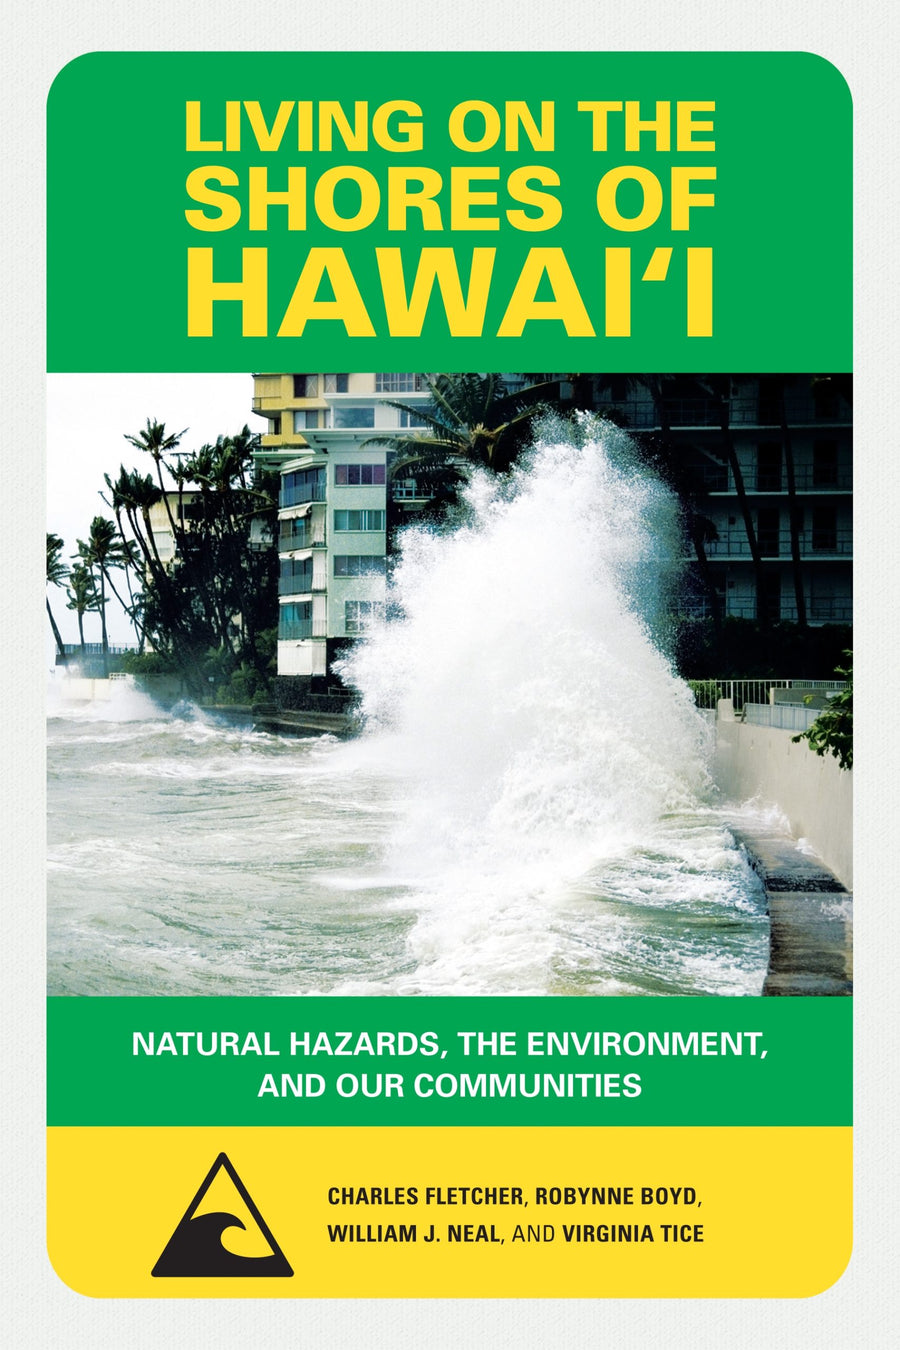 Living on the Shores of Hawaiʻi: Natural Hazards, The Environment, and our Communities